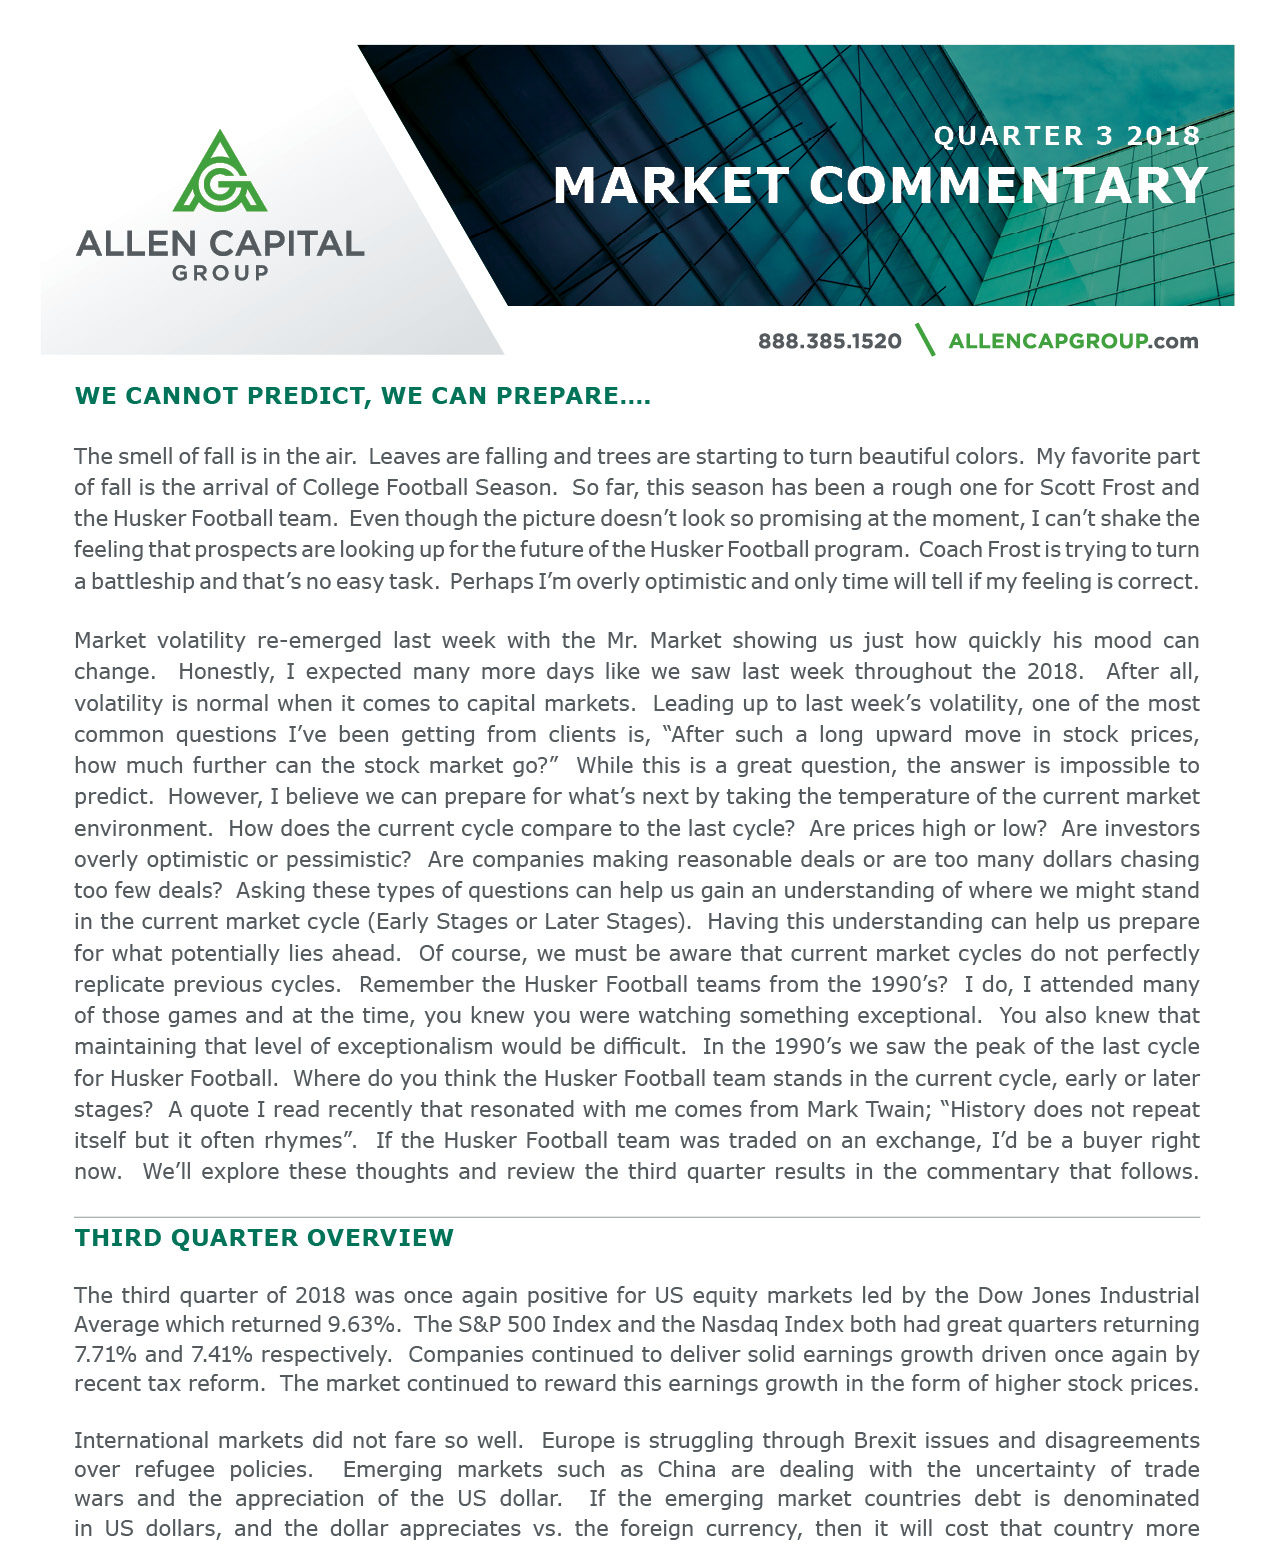 Quarter 3 2018 Market Commentary | Allen Capital Group